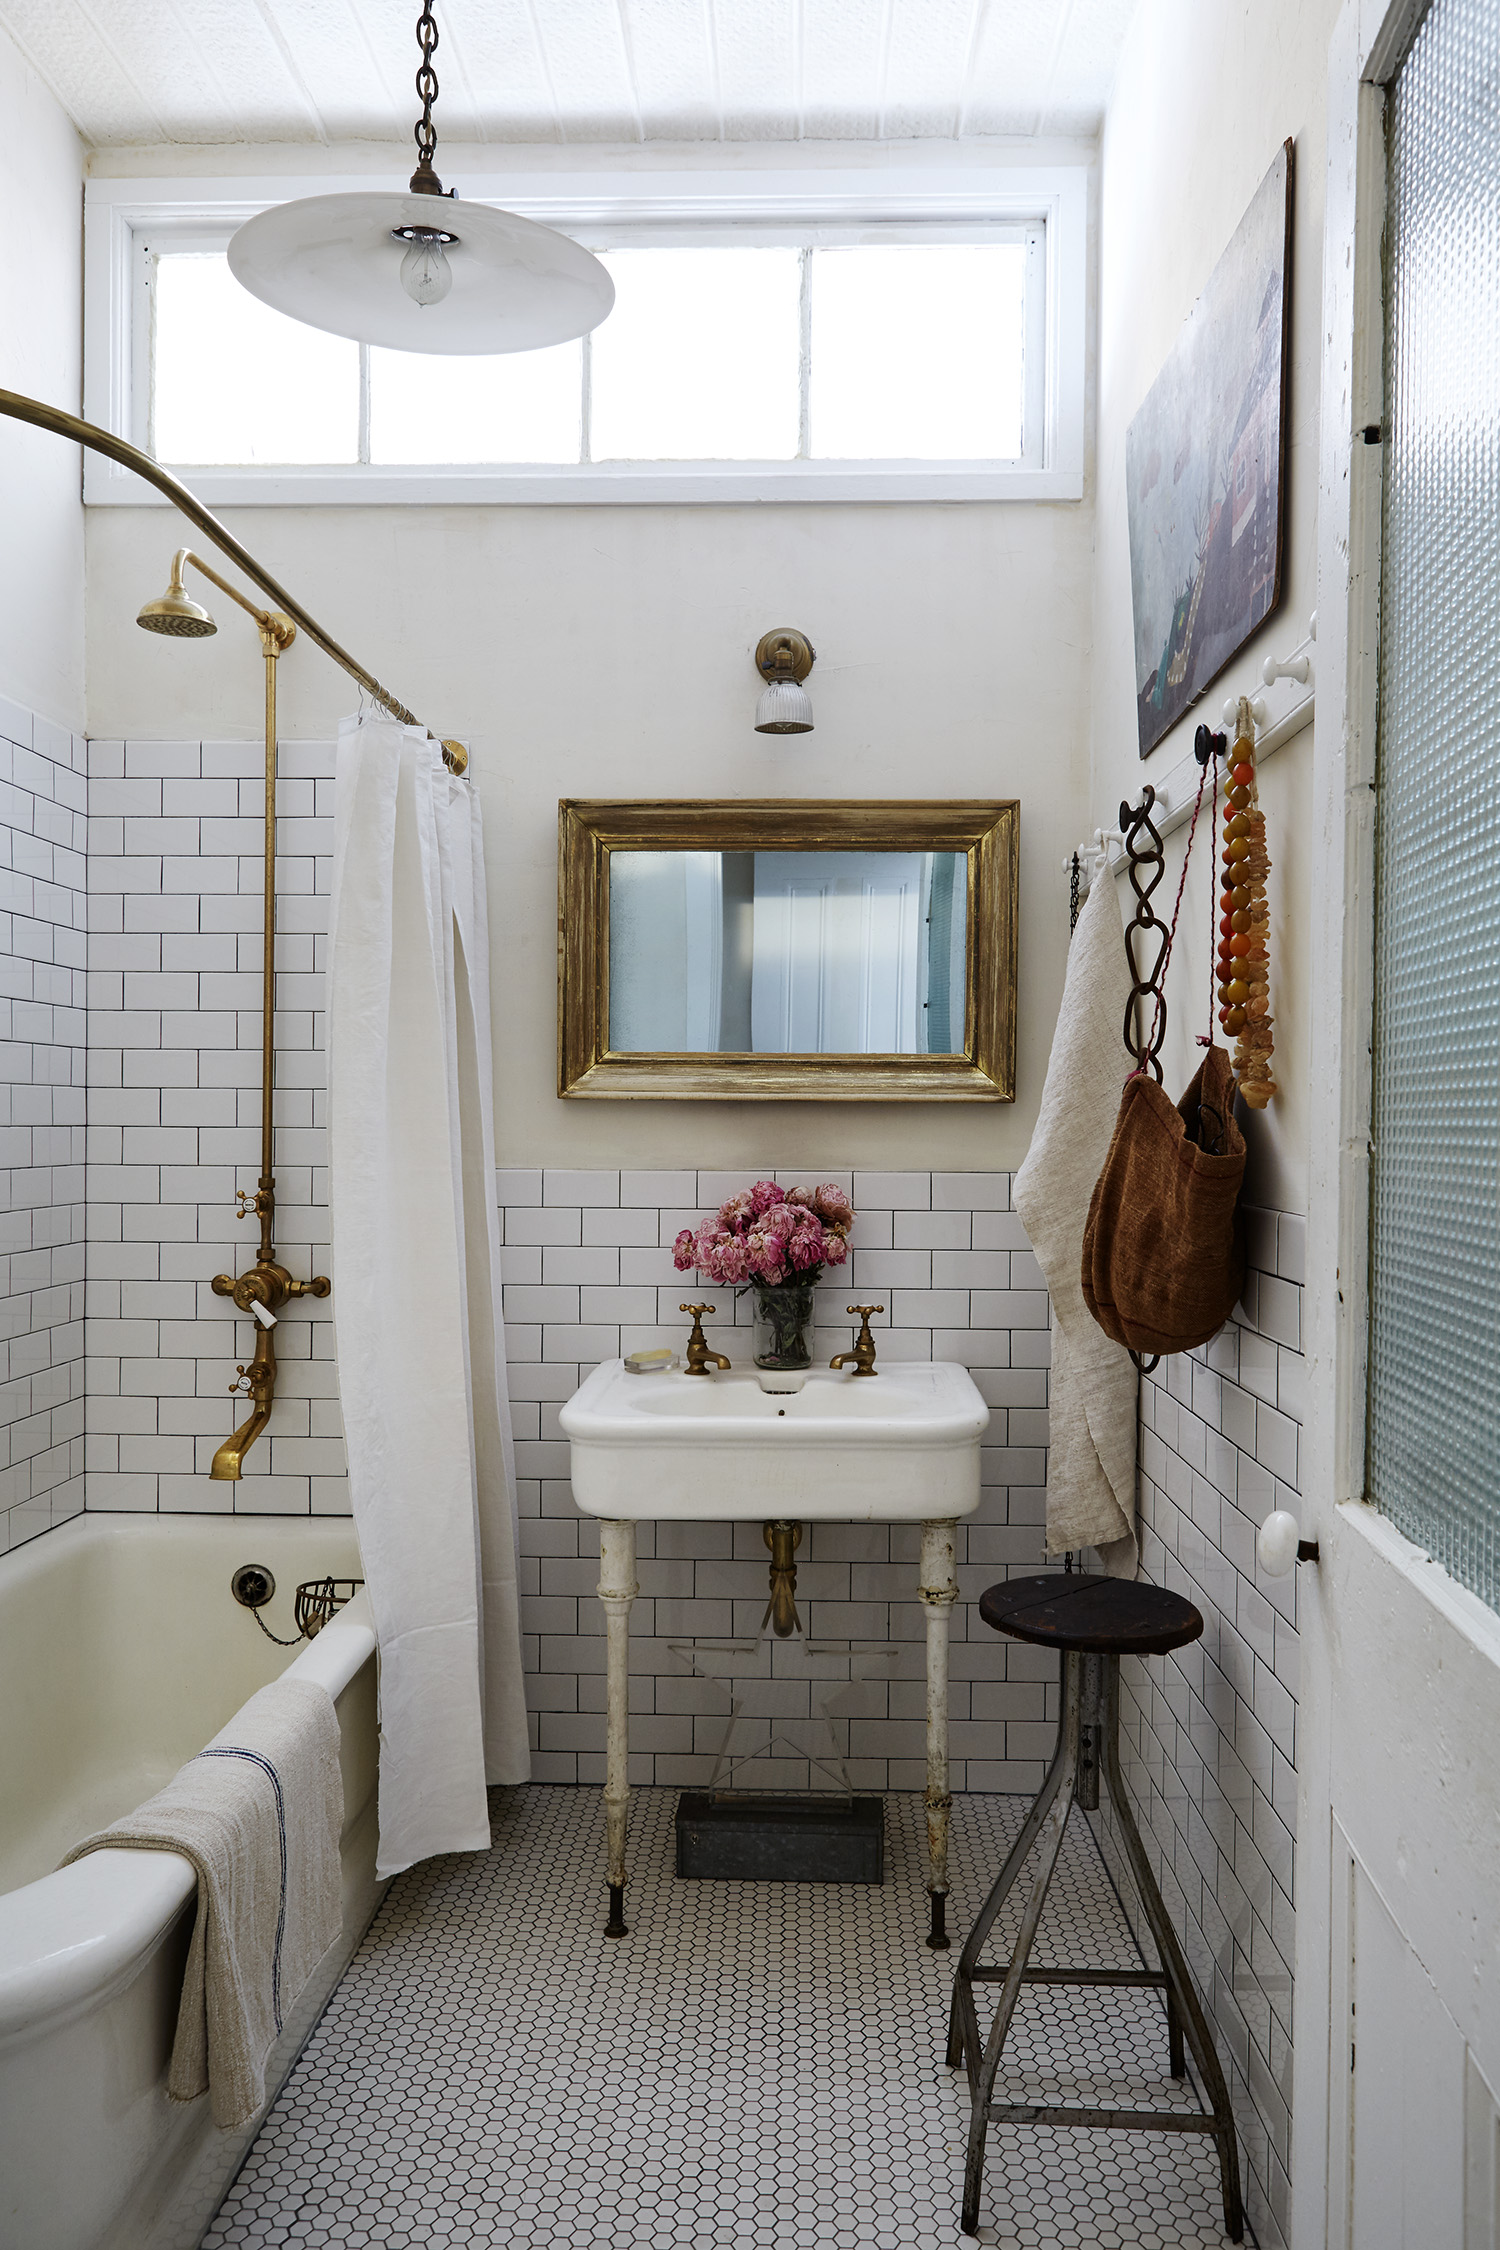 BathRoom_MadameFigaro_JohnDerian9648.jpg